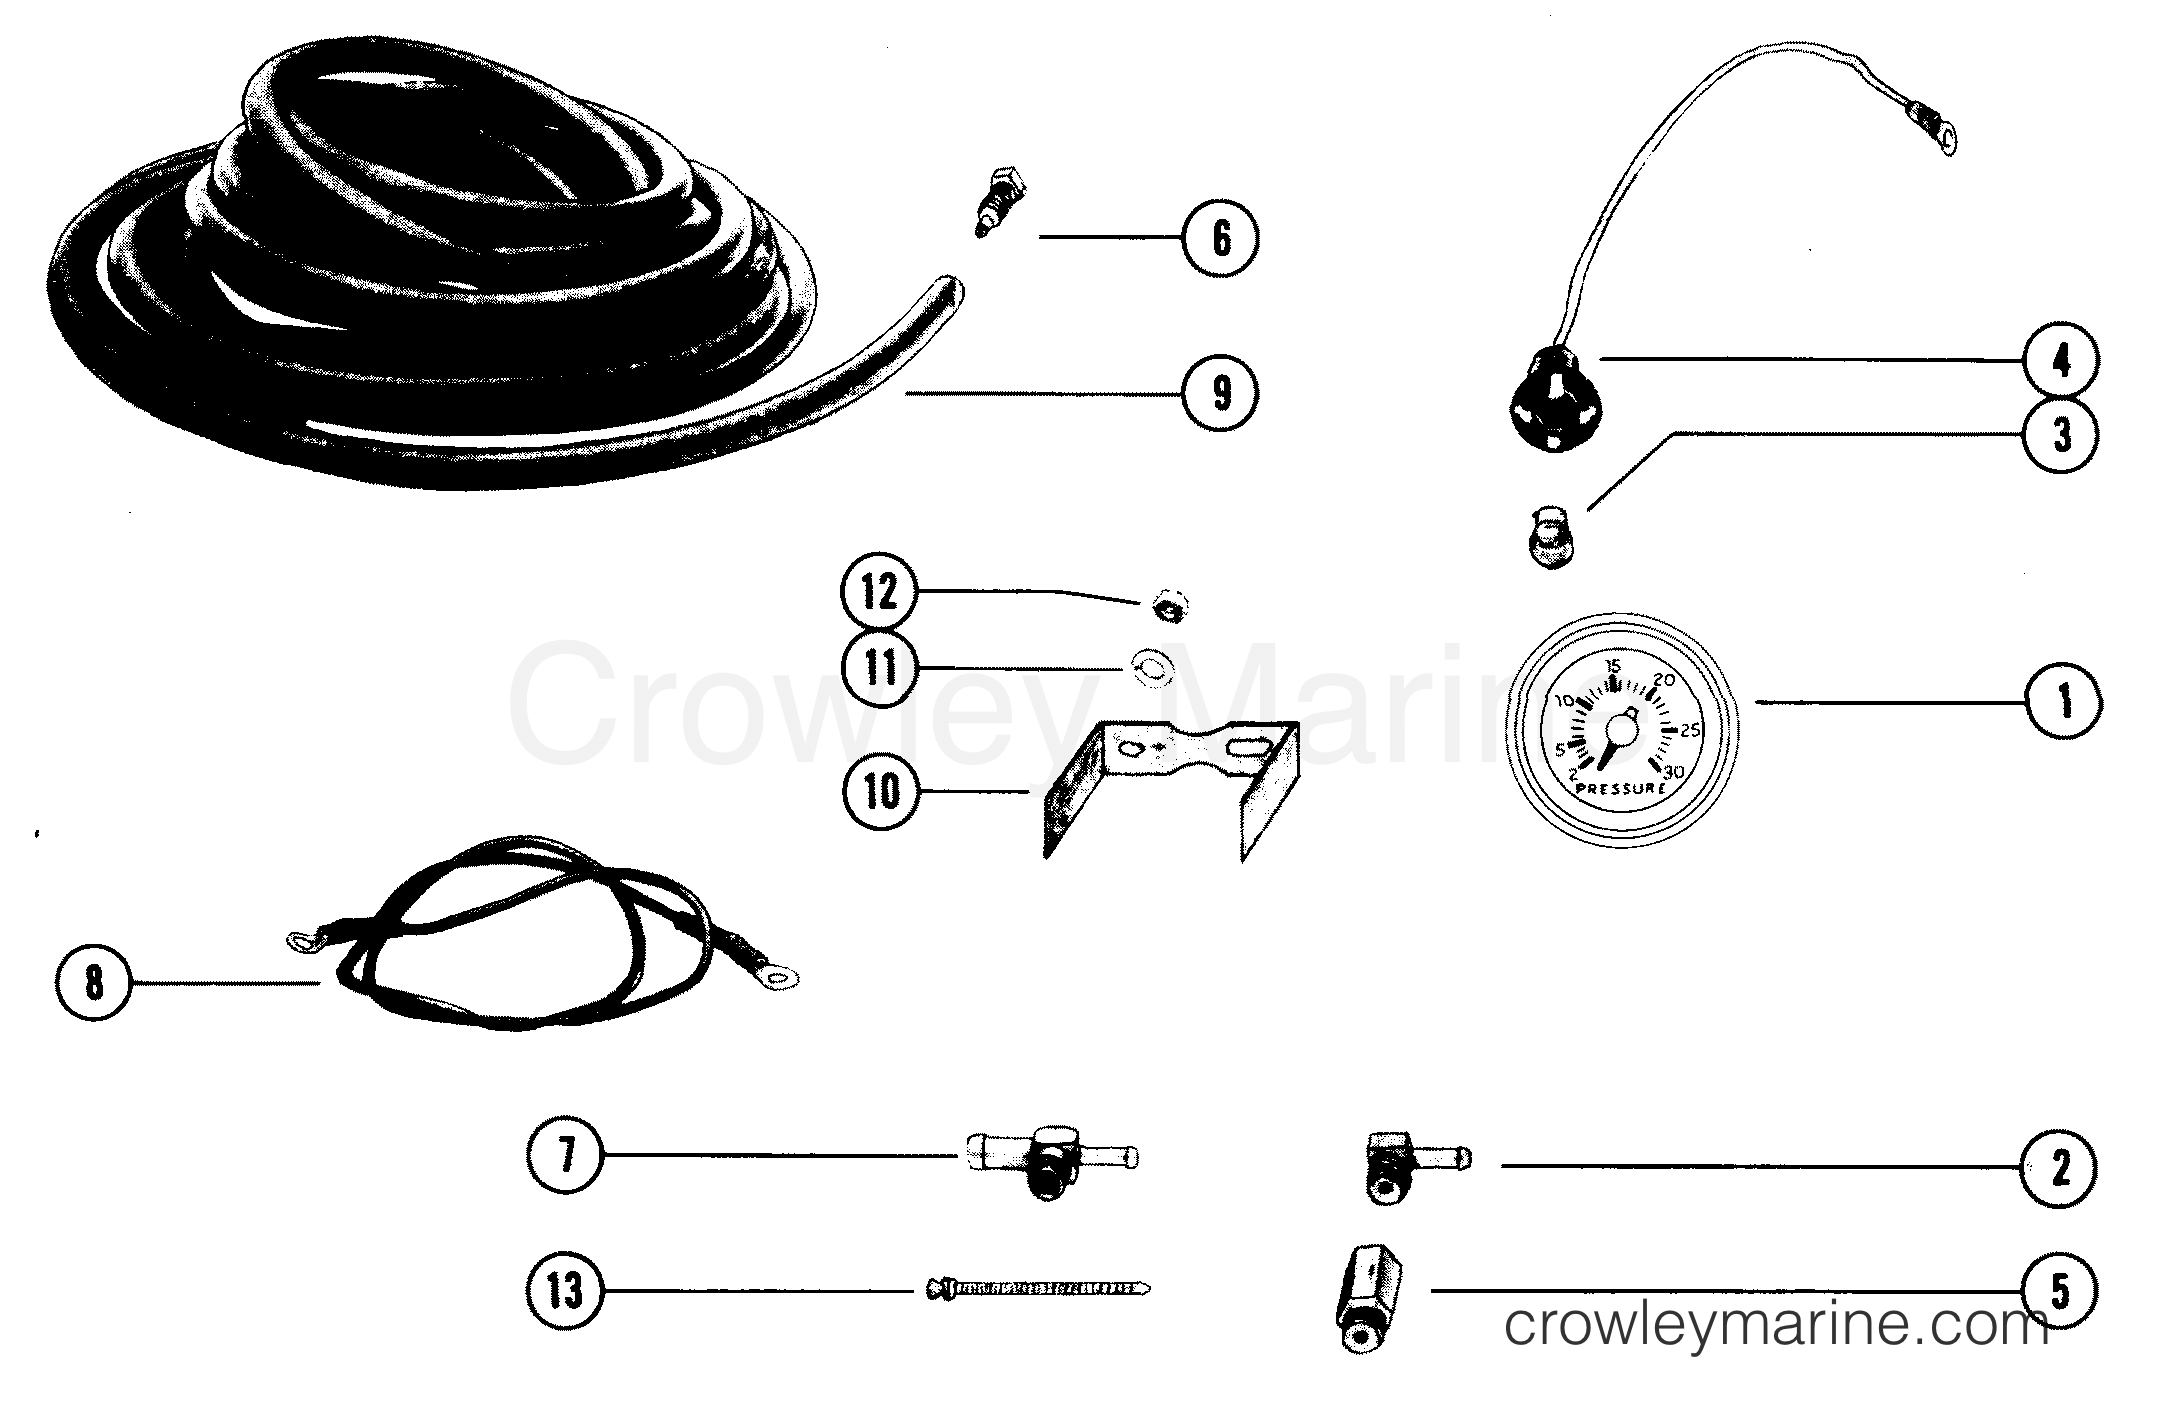 Various Years Rigging Parts Electrical - OB MISC. (1985 AND BELOW) - WATER PRESSURE GAUGE ASSEMBLY section